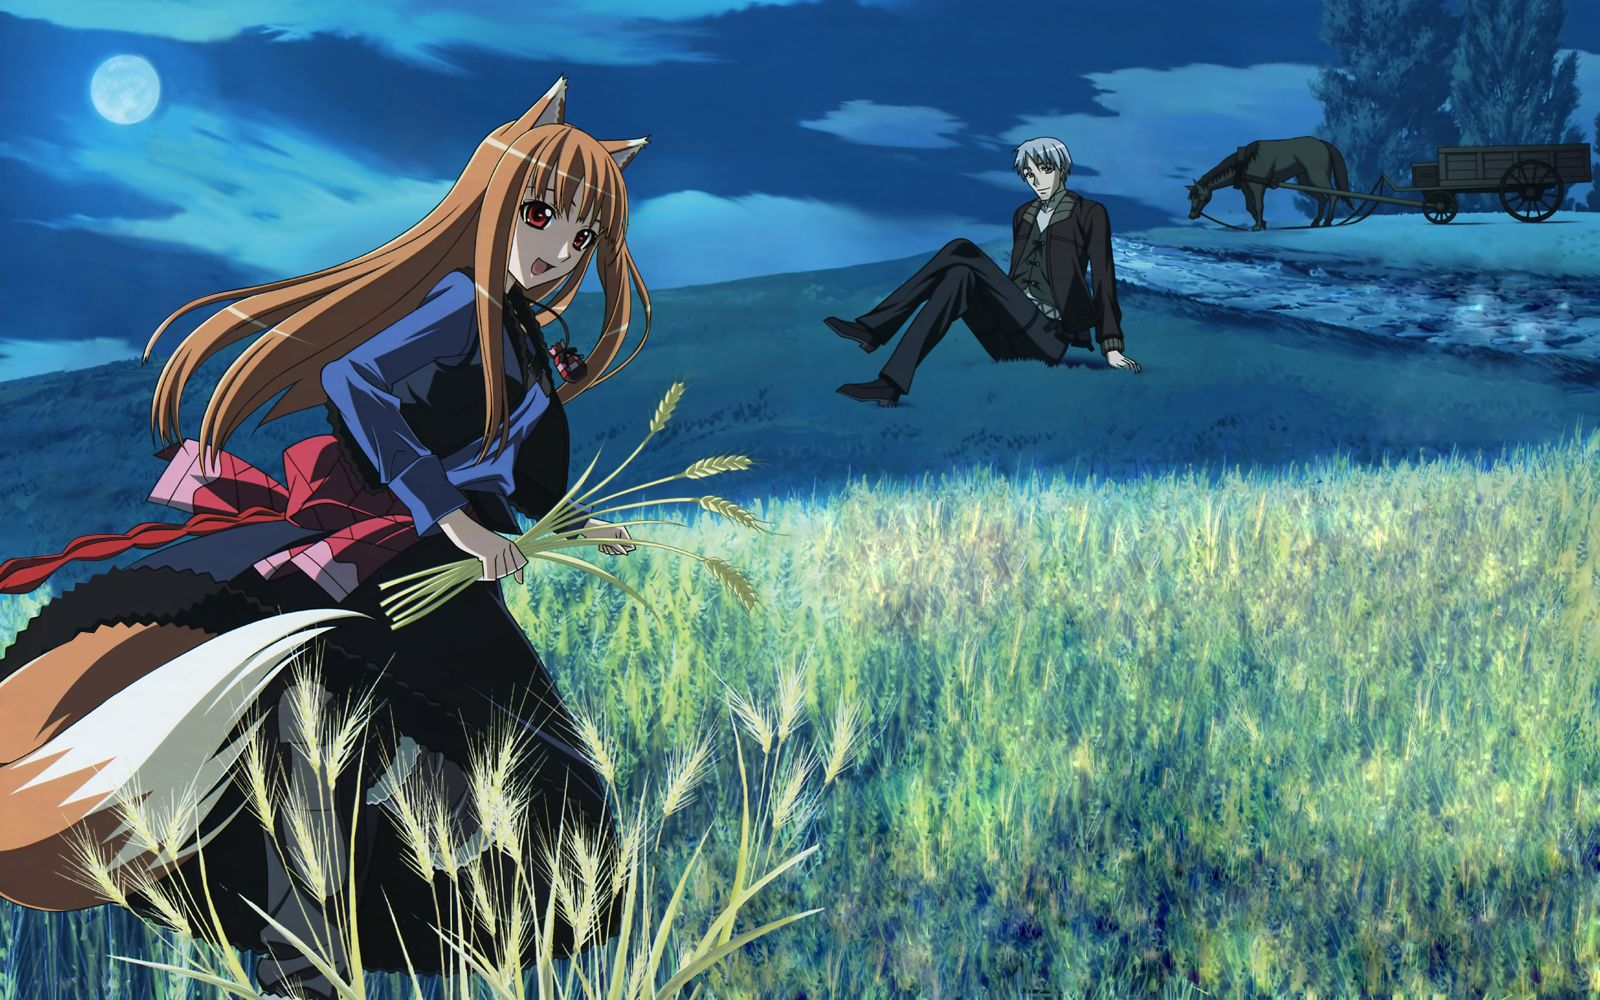 Horo Wallpaper Spice and wolf by Ilzar on DeviantArt